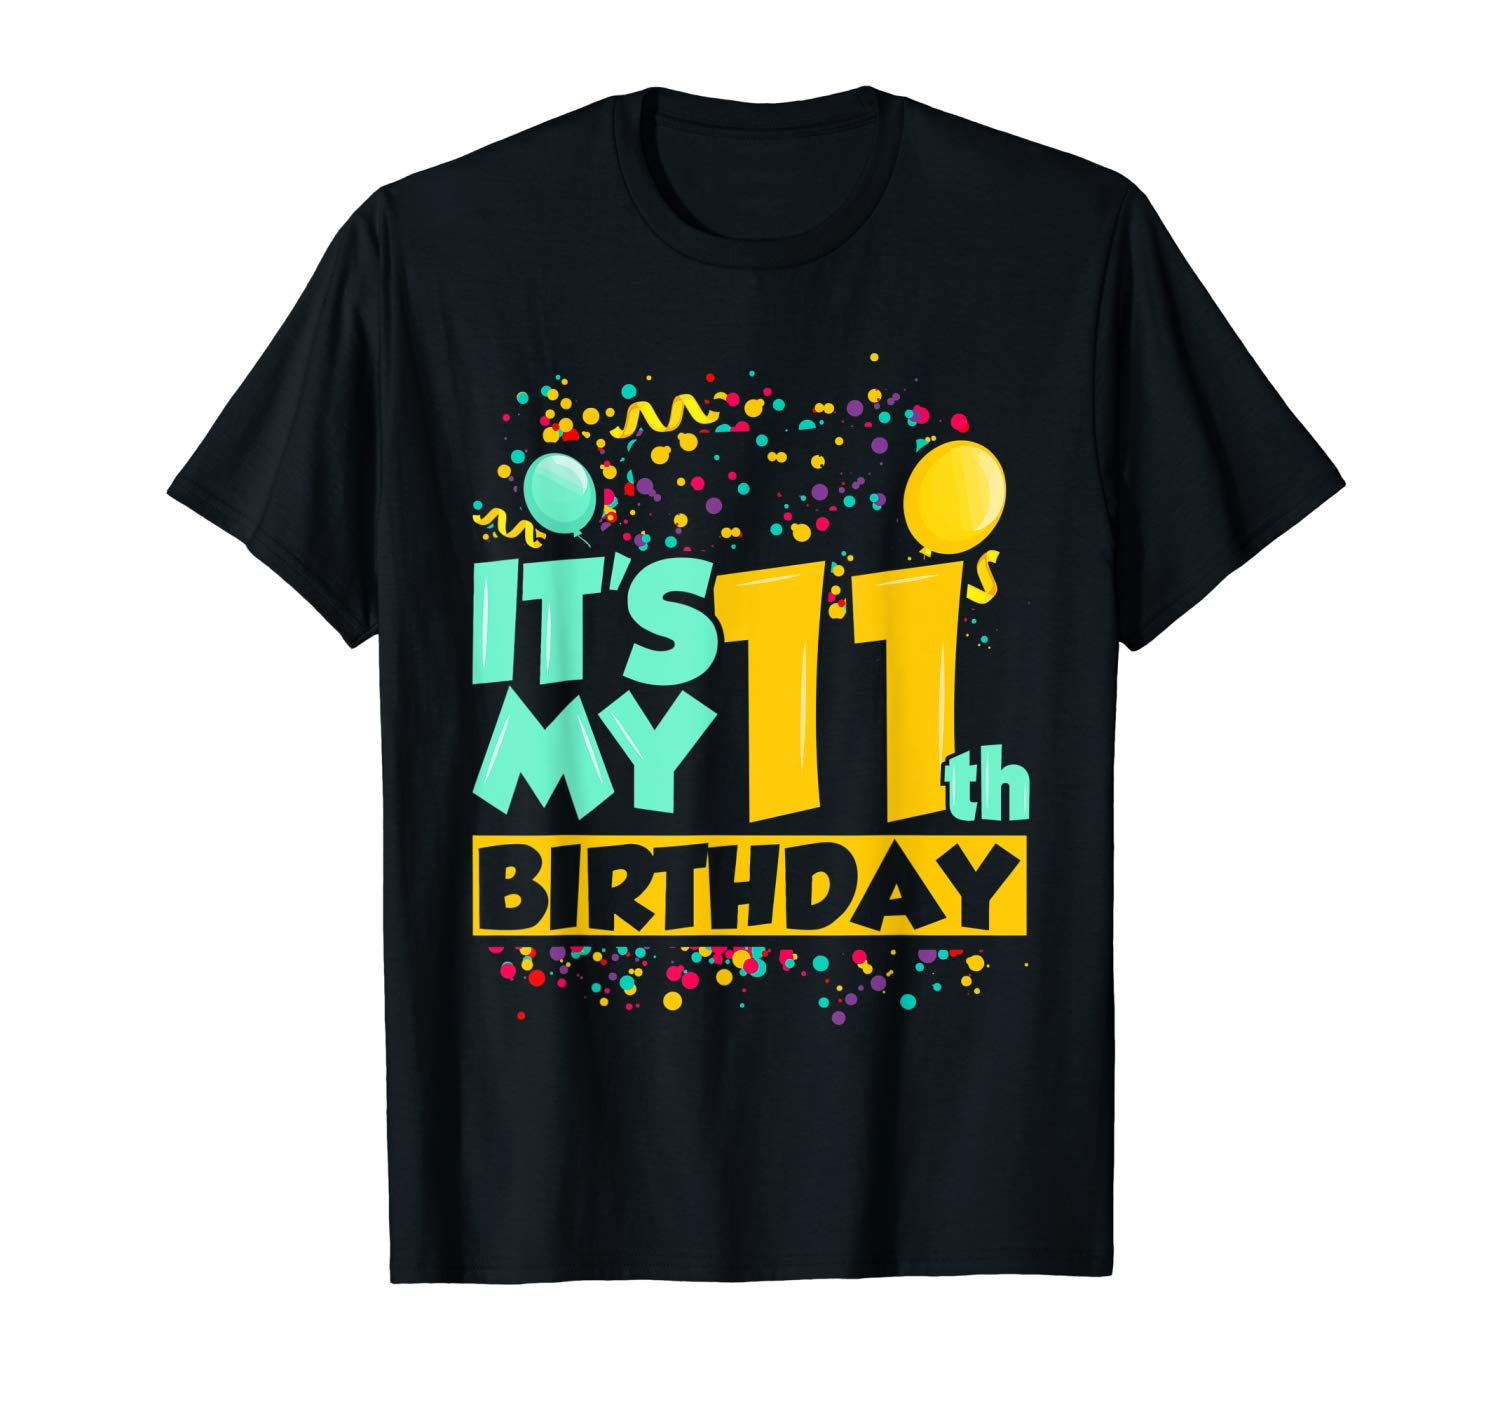 It S My 11th Birthday Funny Birthday Shirt For 11 Years Old T Shirt